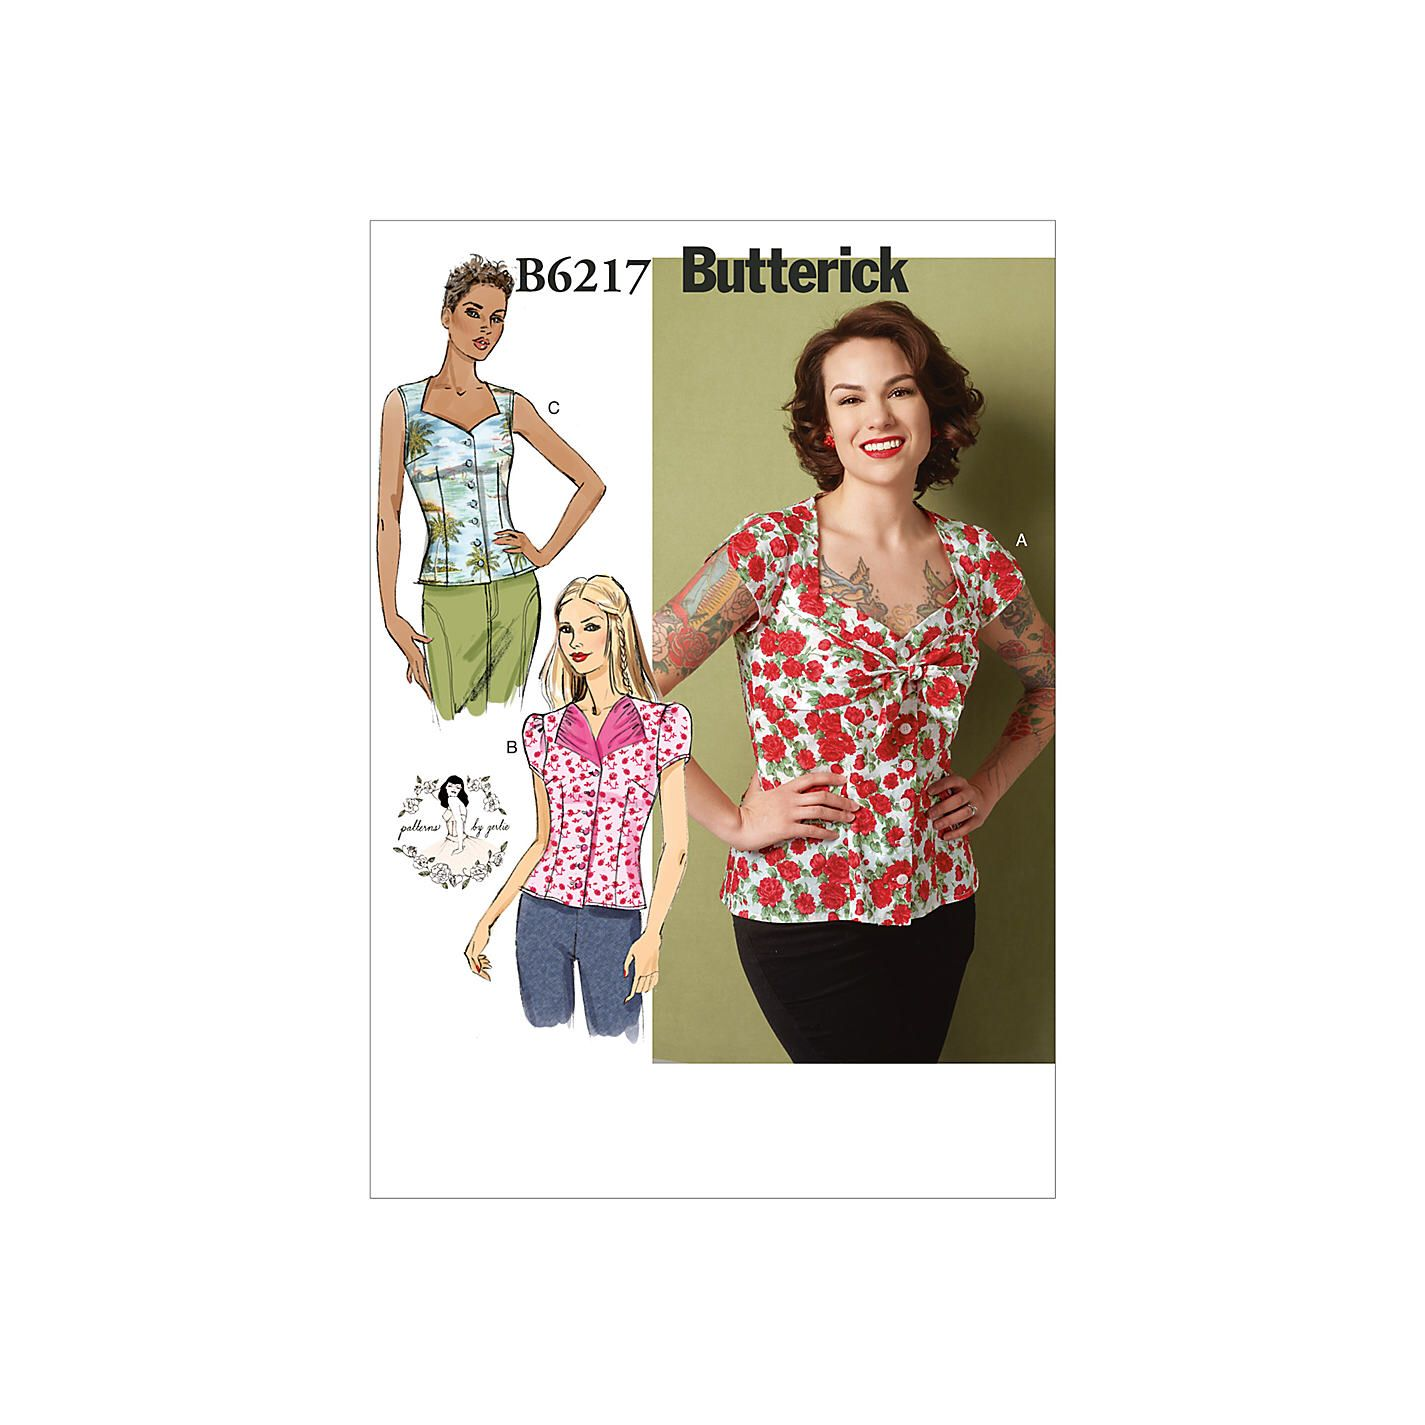 Butterick 6217 Misses Blouse Pattern by Gertie ( Gretschen Hirsch ...